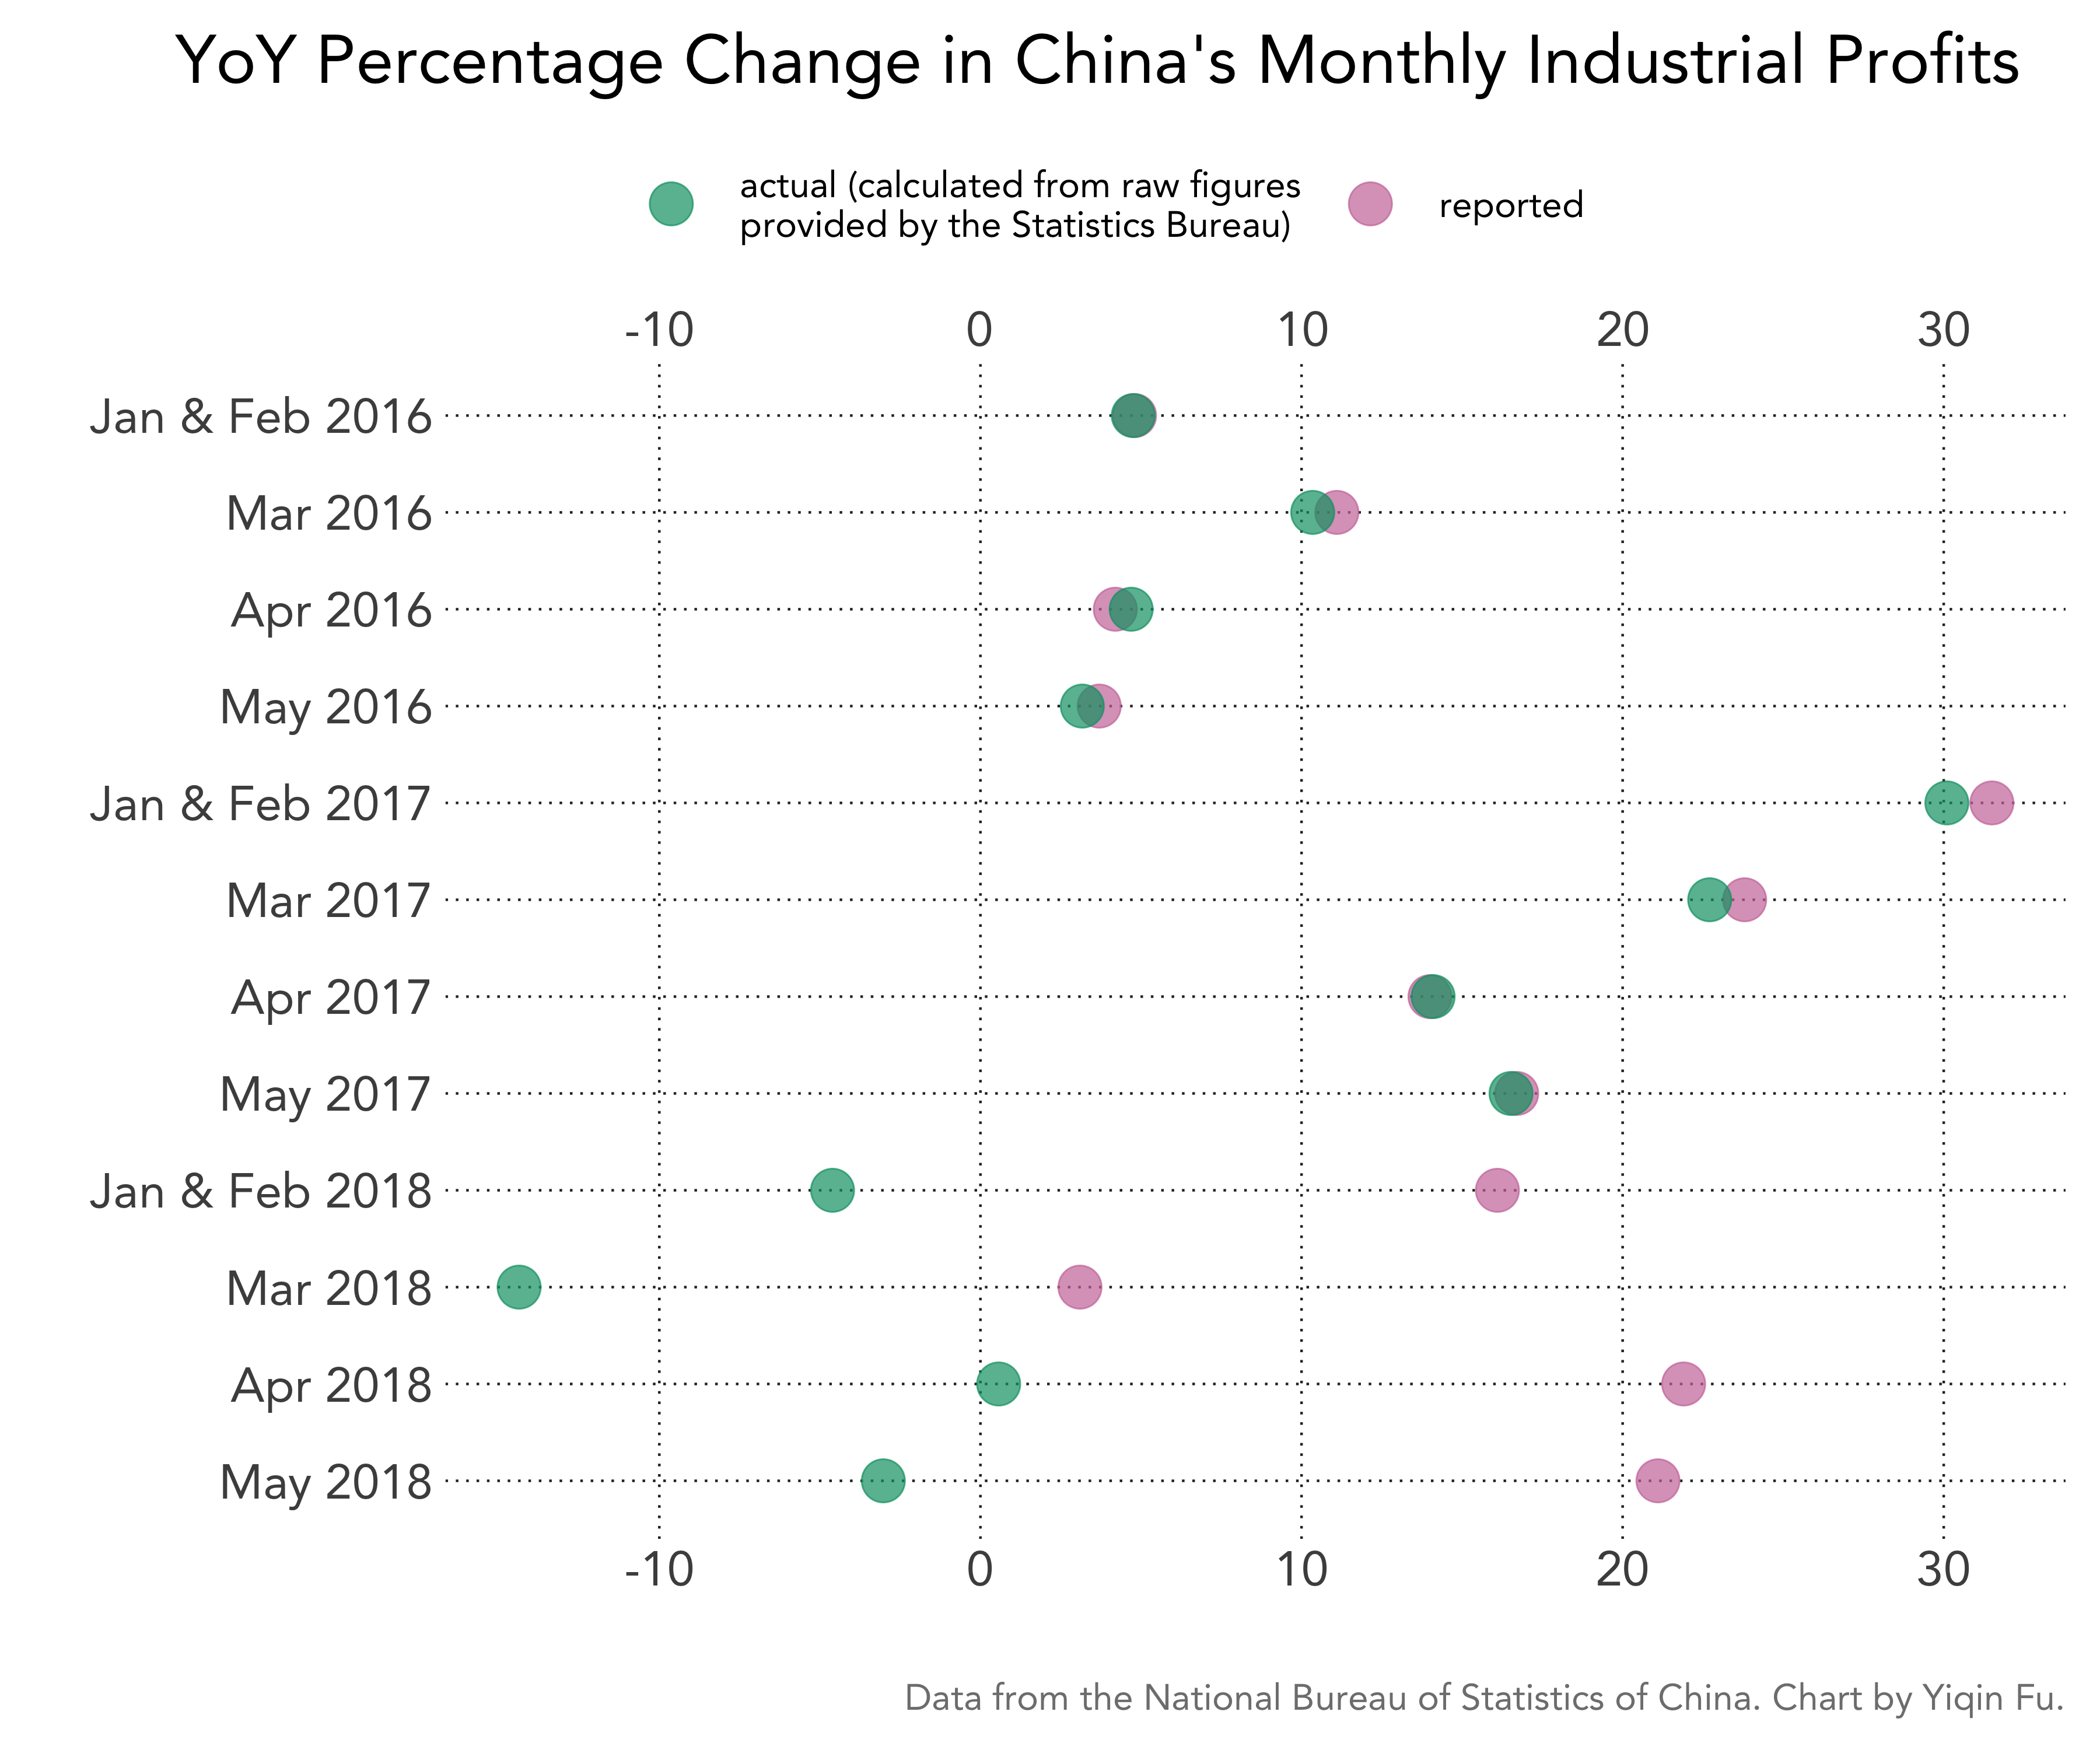 china-monthly-industrial-profit-pct-change